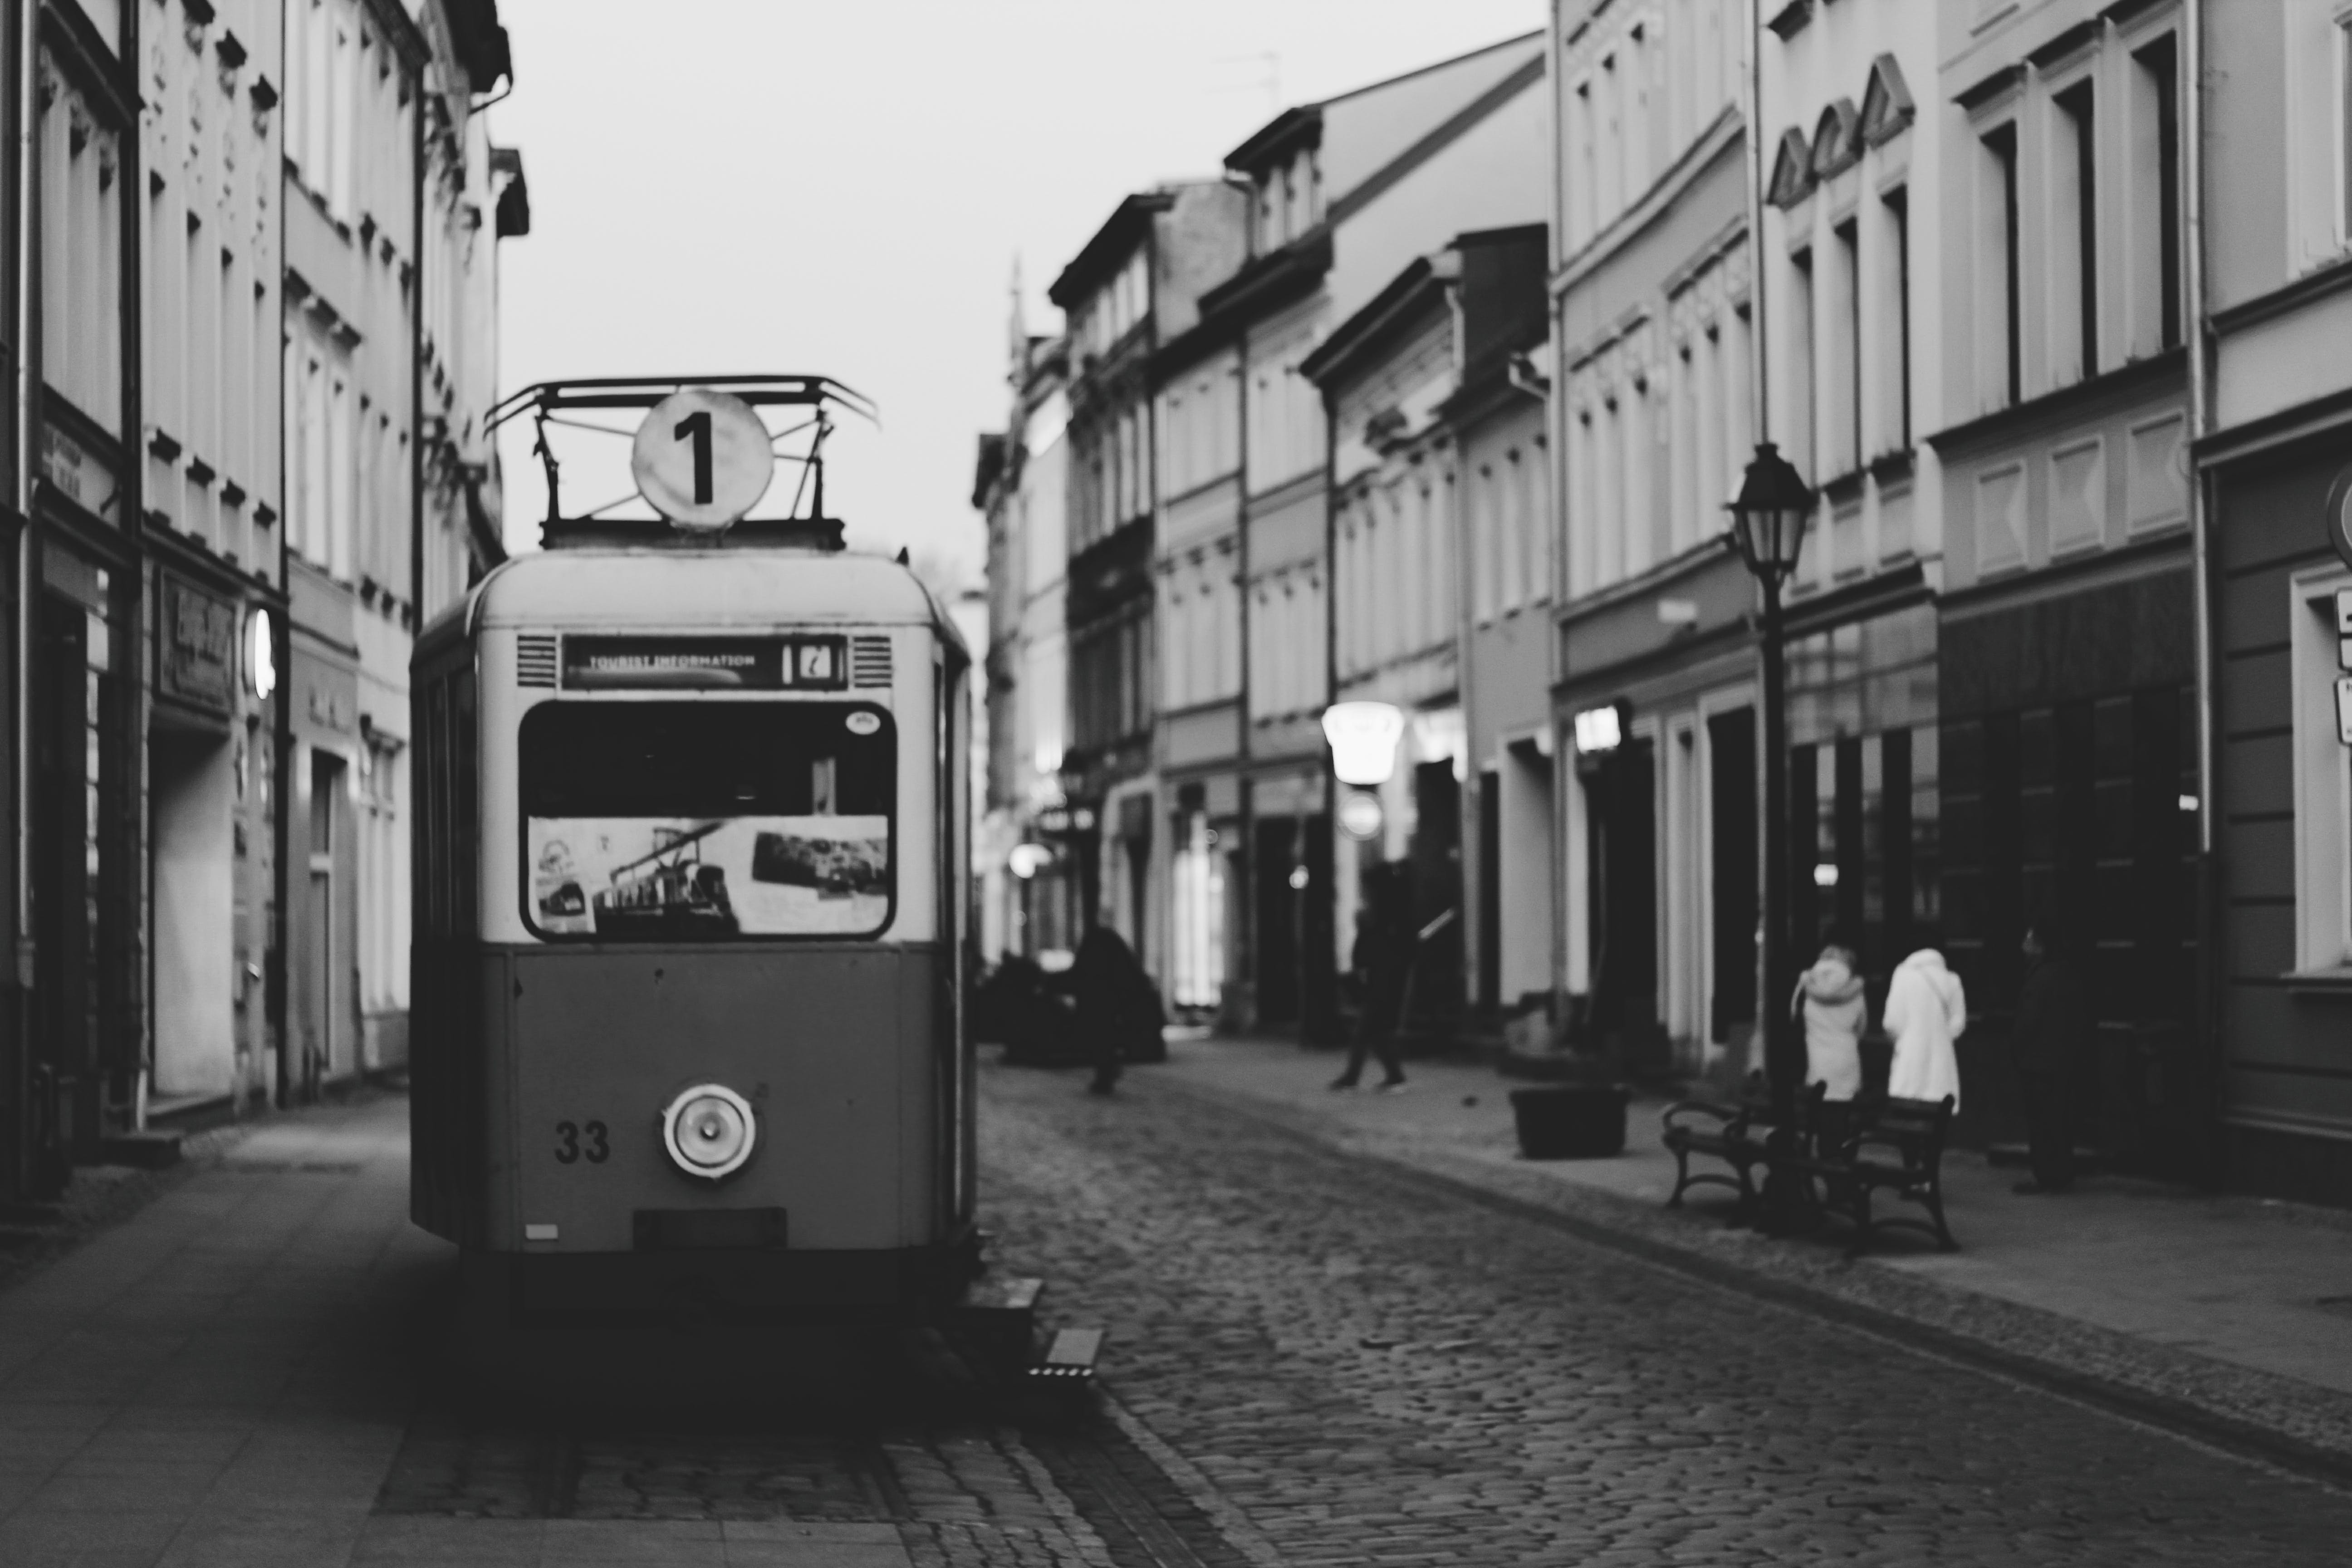 Grayscale Photography Of Tram